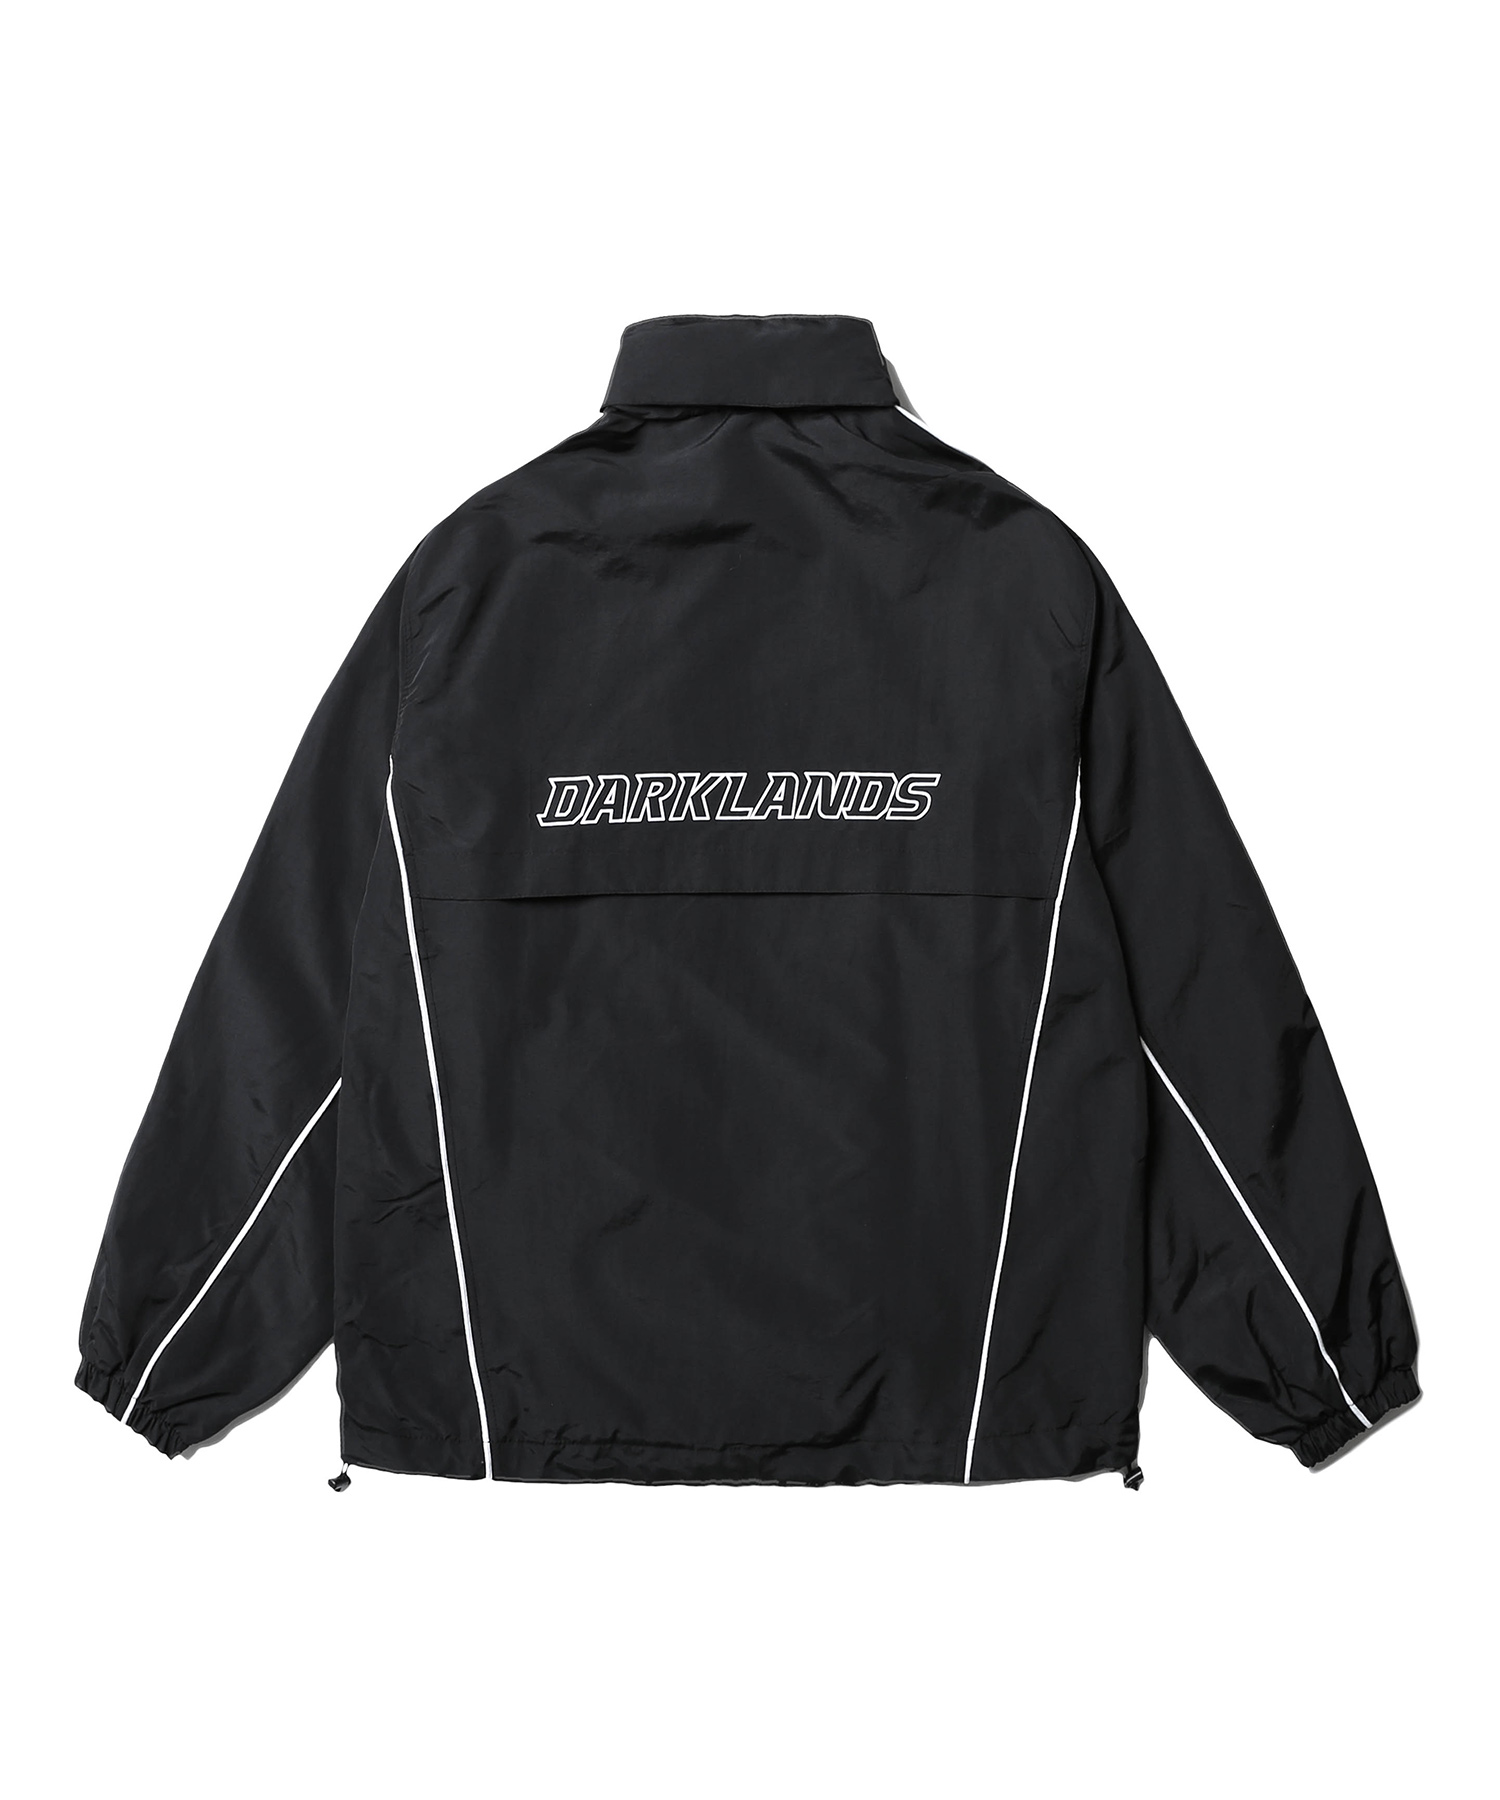 Darkland Wind Jacket (Black)